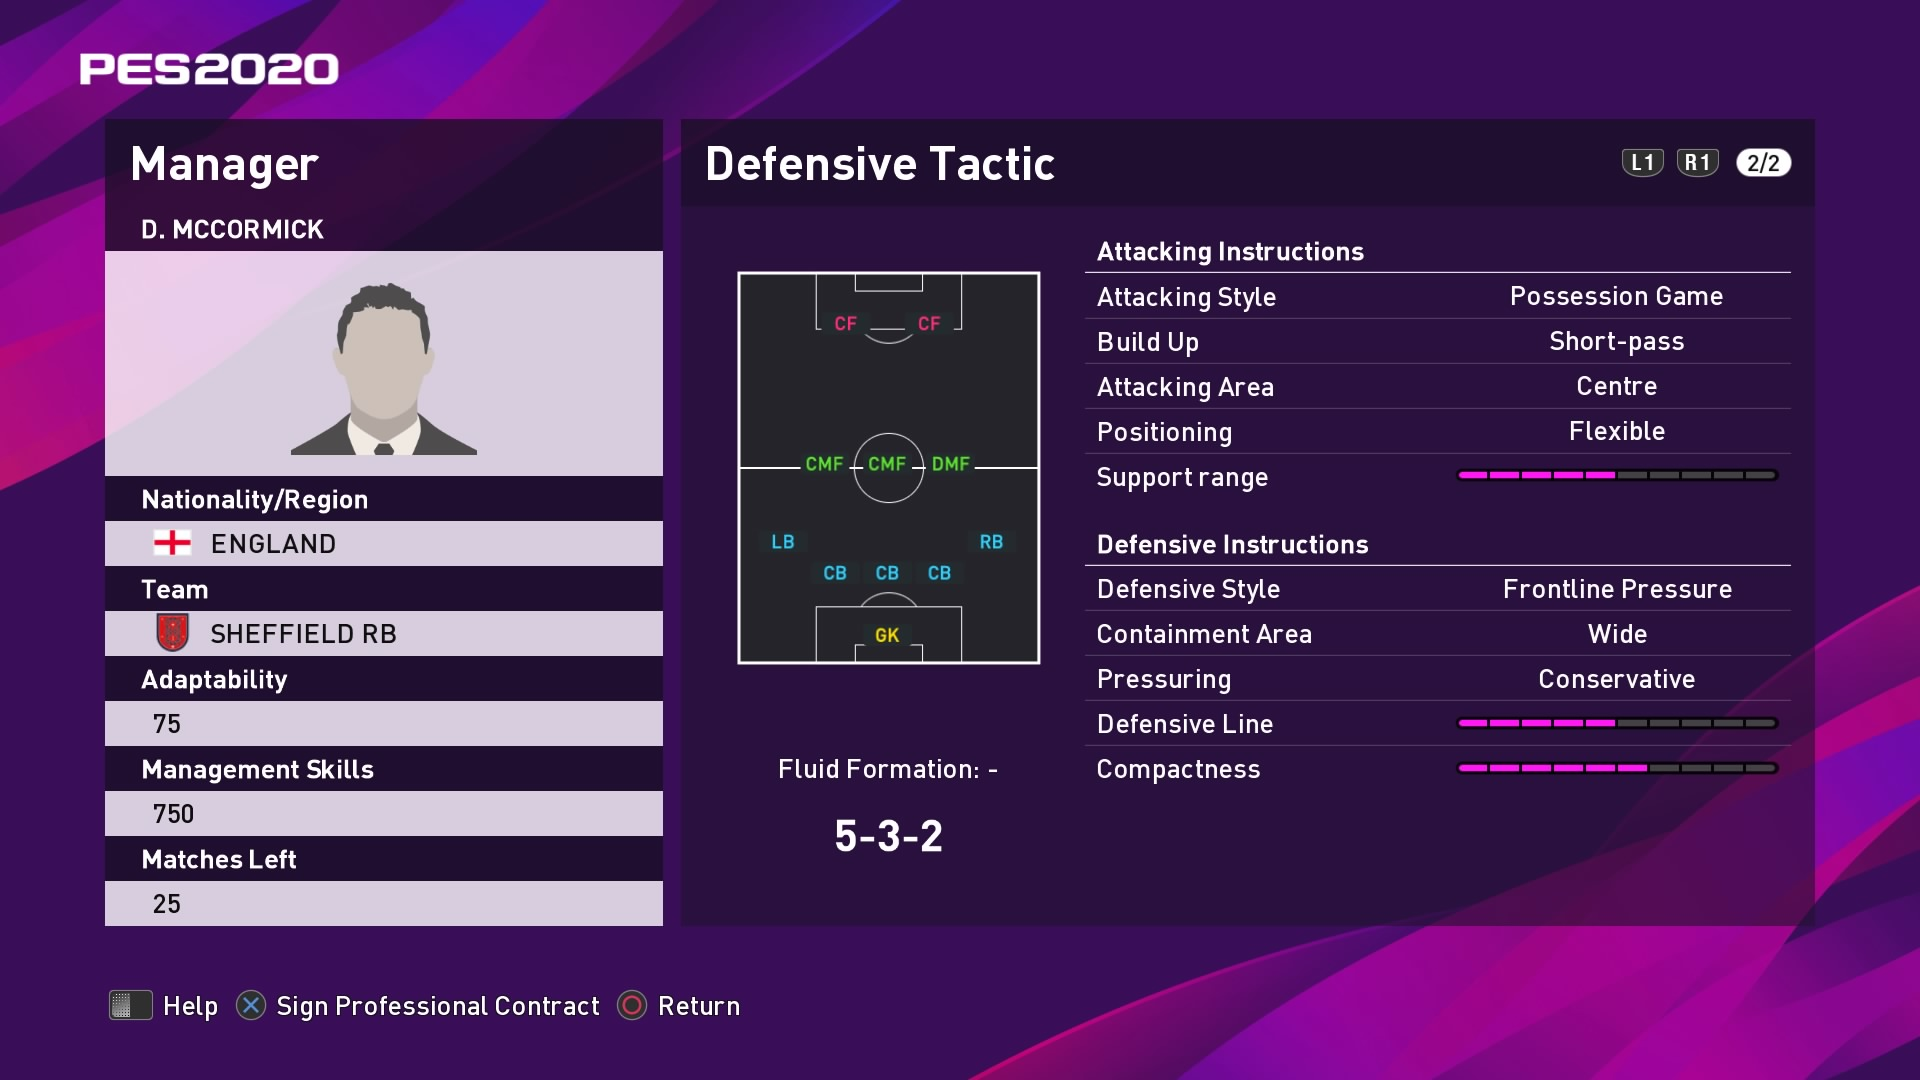 D. McCormick (Chris Wilder) Defensive Tactic in PES 2020 myClub